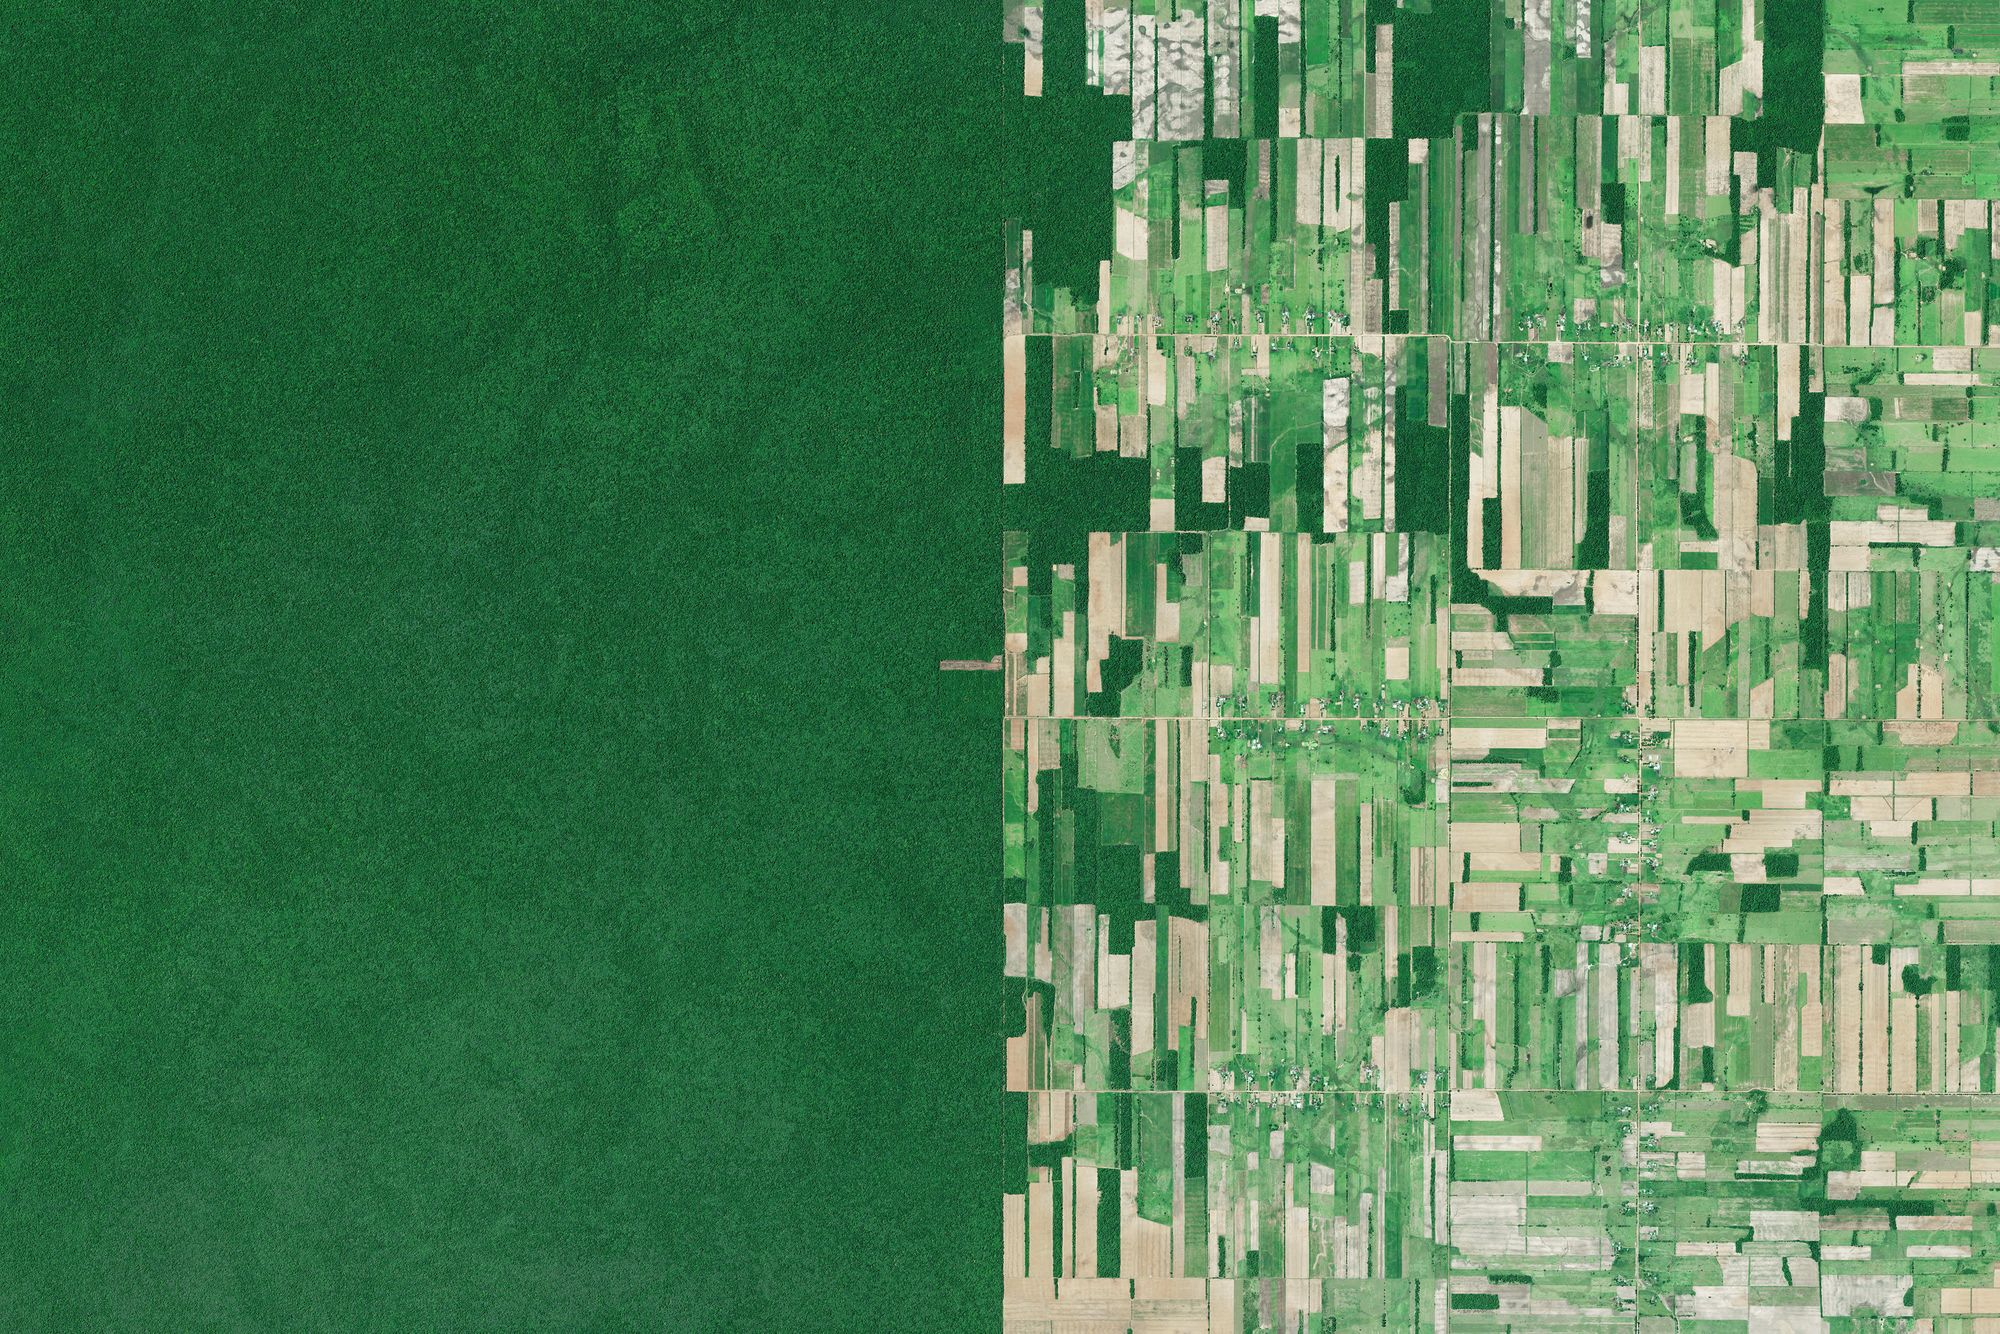 Rainforest in Santa Cruz, Bolivia is cleared for agriculture and cattle ranching. Image by Overview, source imagery (c) Maxar